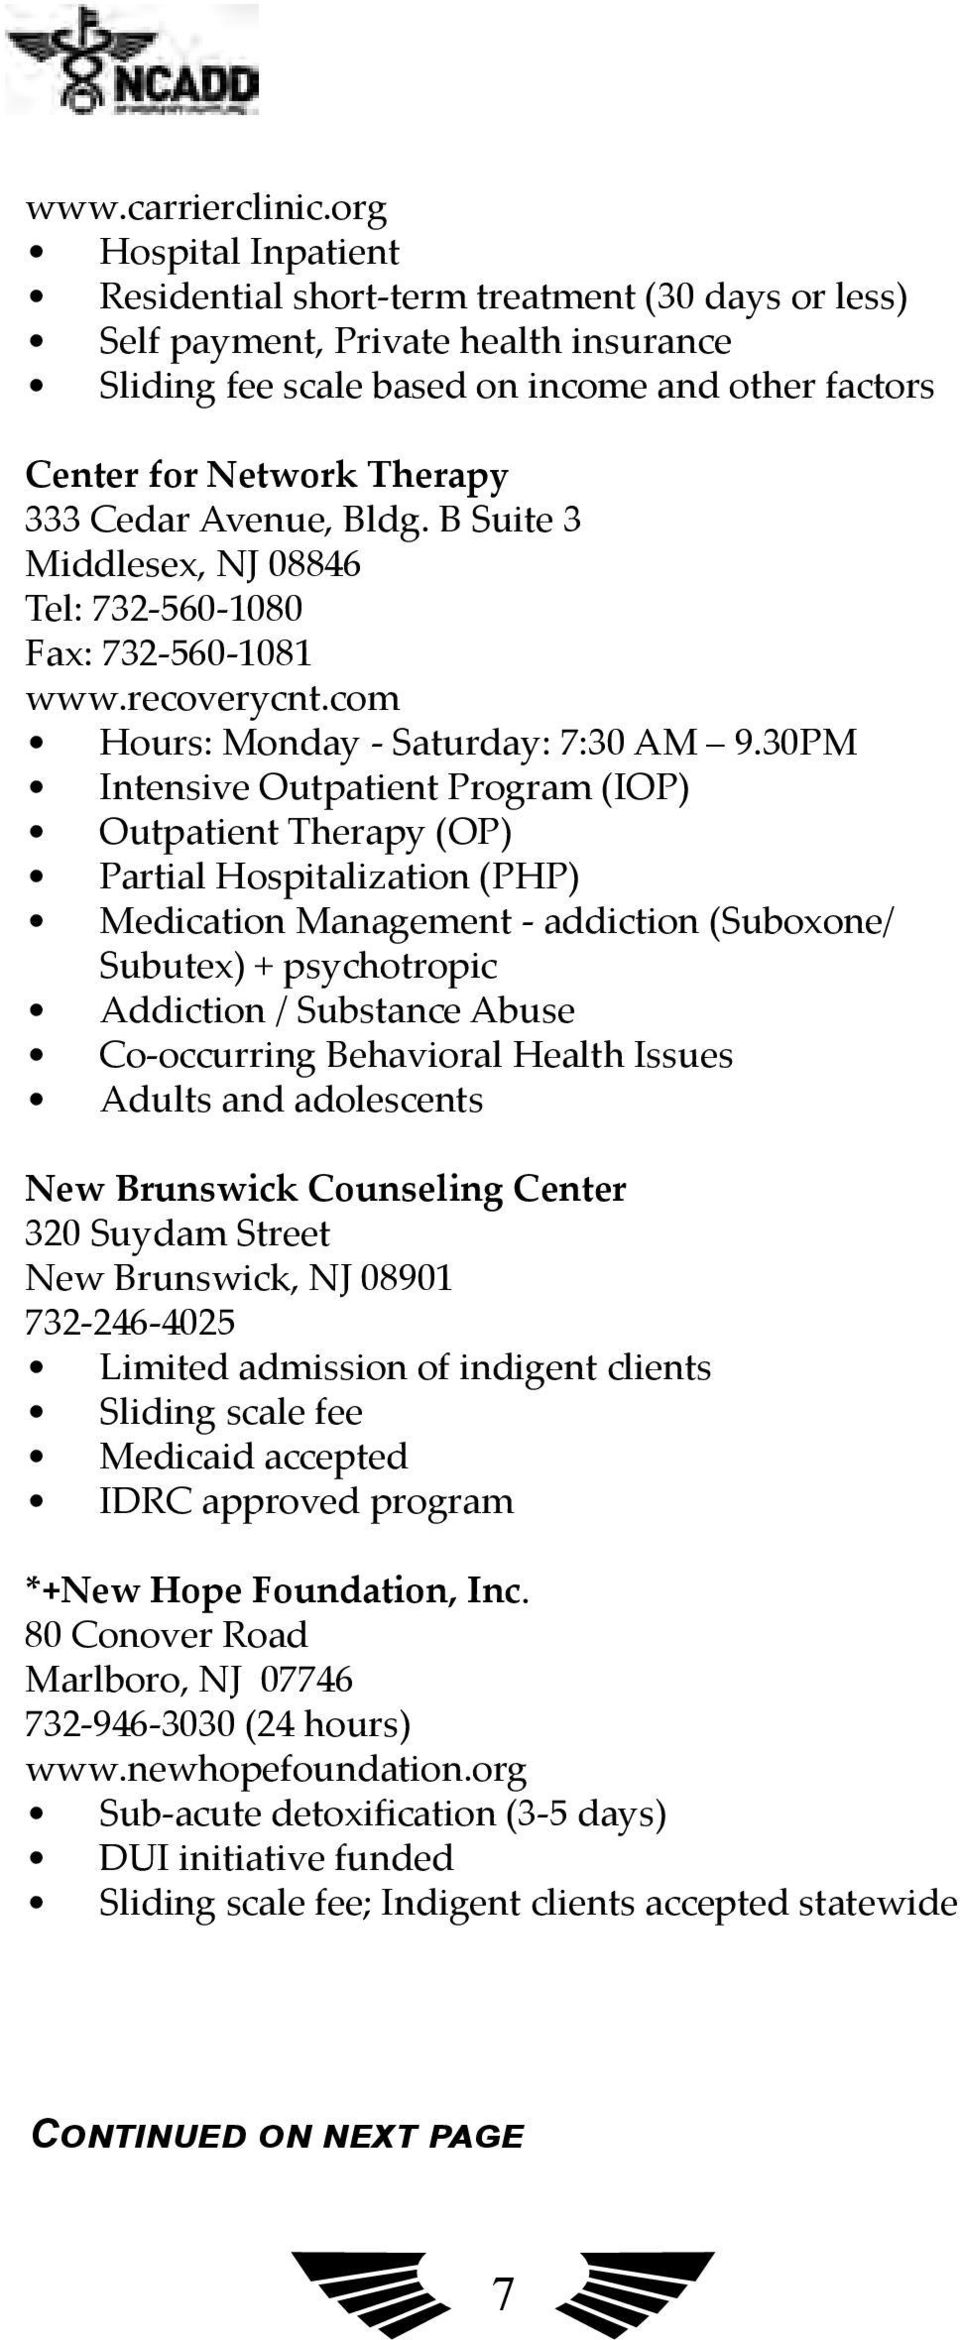 Cedar Avenue, Bldg. B Suite 3 Middlesex, NJ 08846 Tel: 732-560-1080 Fax: 732-560-1081 www.recoverycnt.com Hours: Monday - Saturday: 7:30 AM 9.